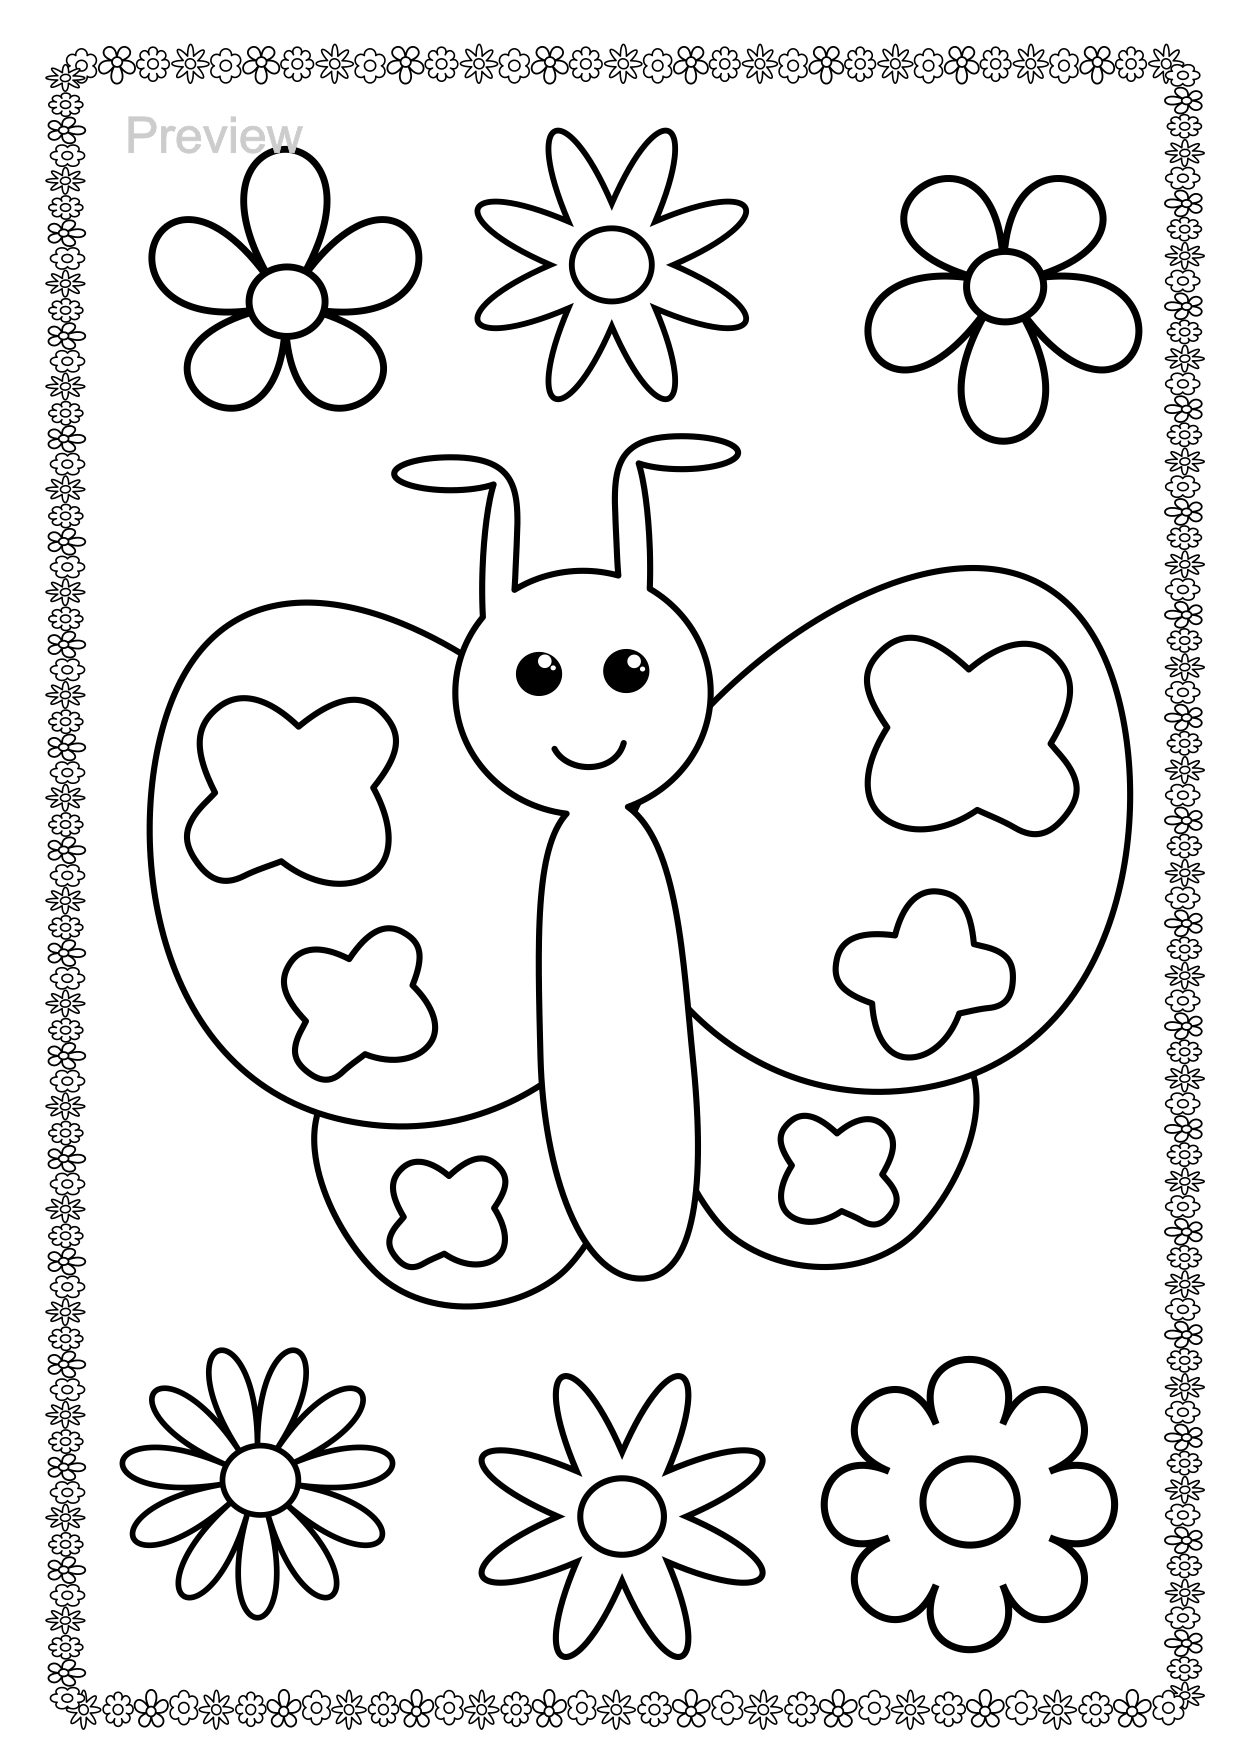 Pin By Nadine Blam On Coloring Pages Preschool Coloring Pages Coloring Books Butterfly Coloring Page [ 1750 x 1248 Pixel ]